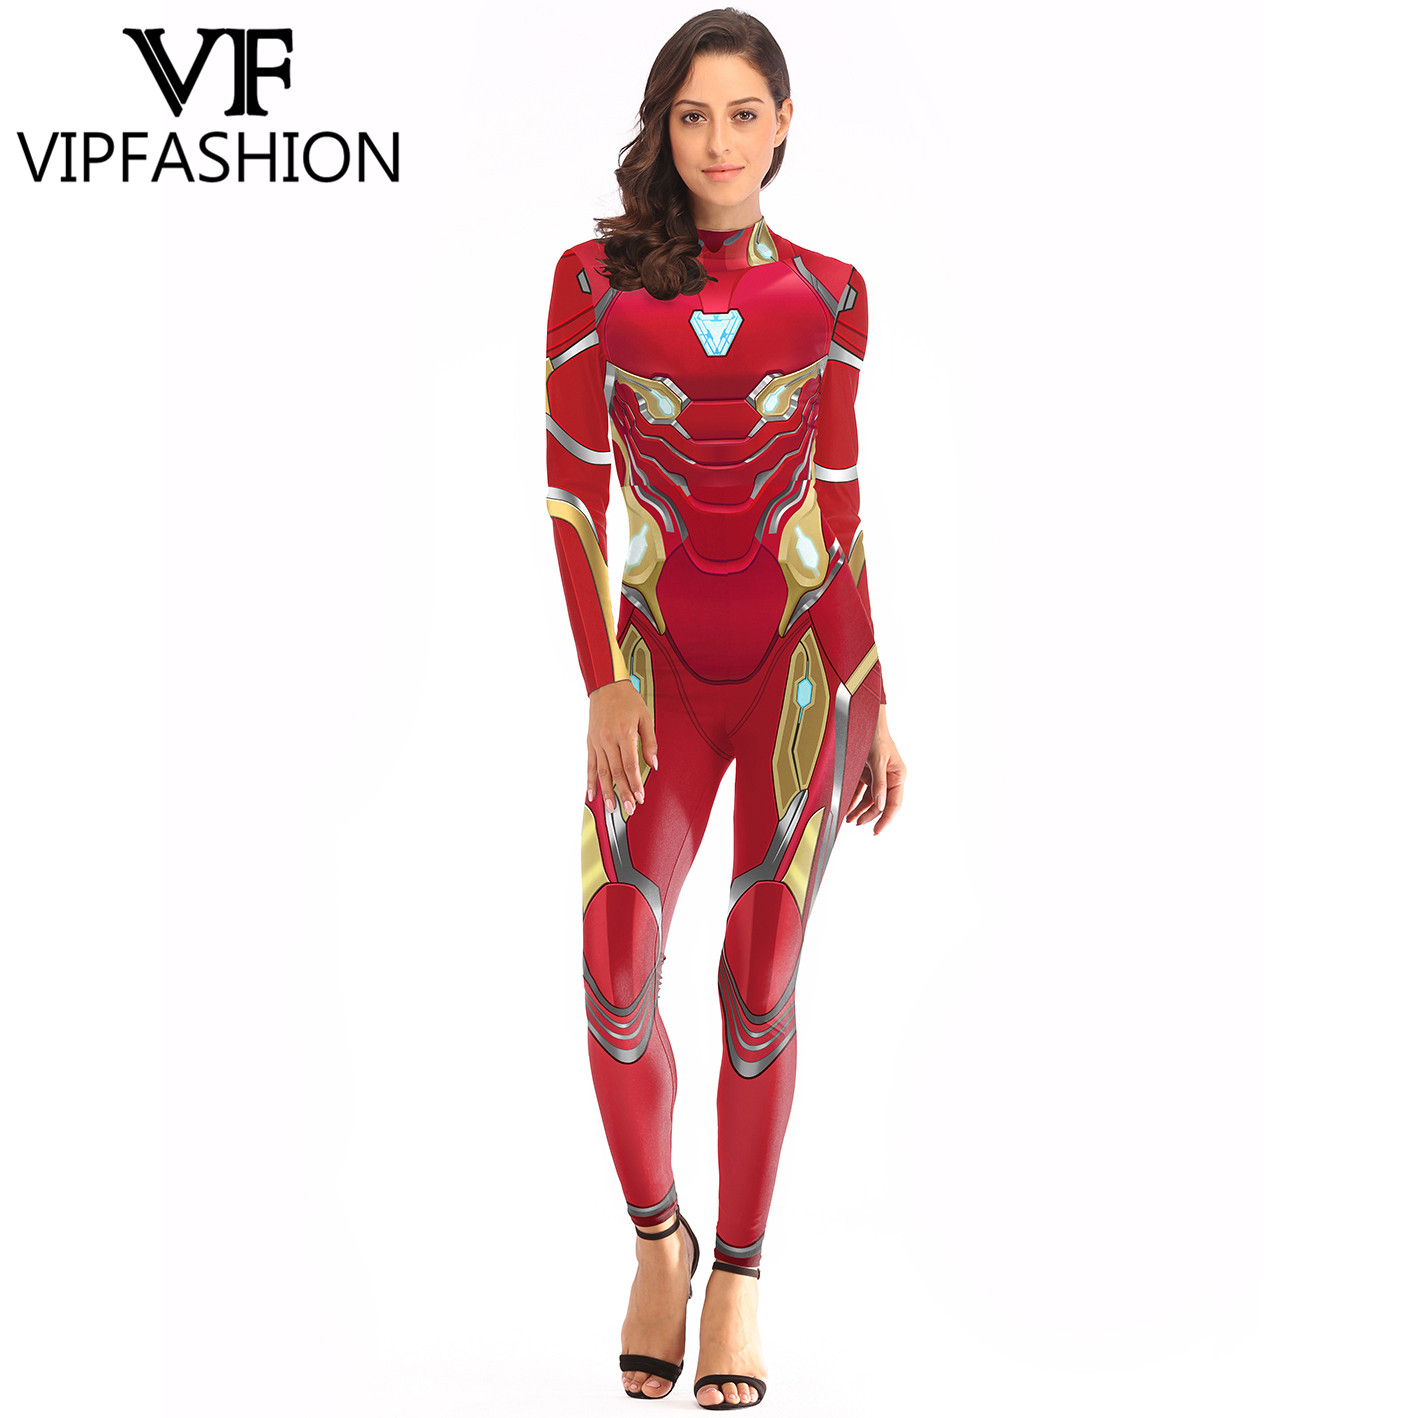 VIP FASHION 2020 Halloween Costumes For Women Movie Cosplay Bodysuit 3D Printed Avengers Superhero Iron Man Cosplay Costumes